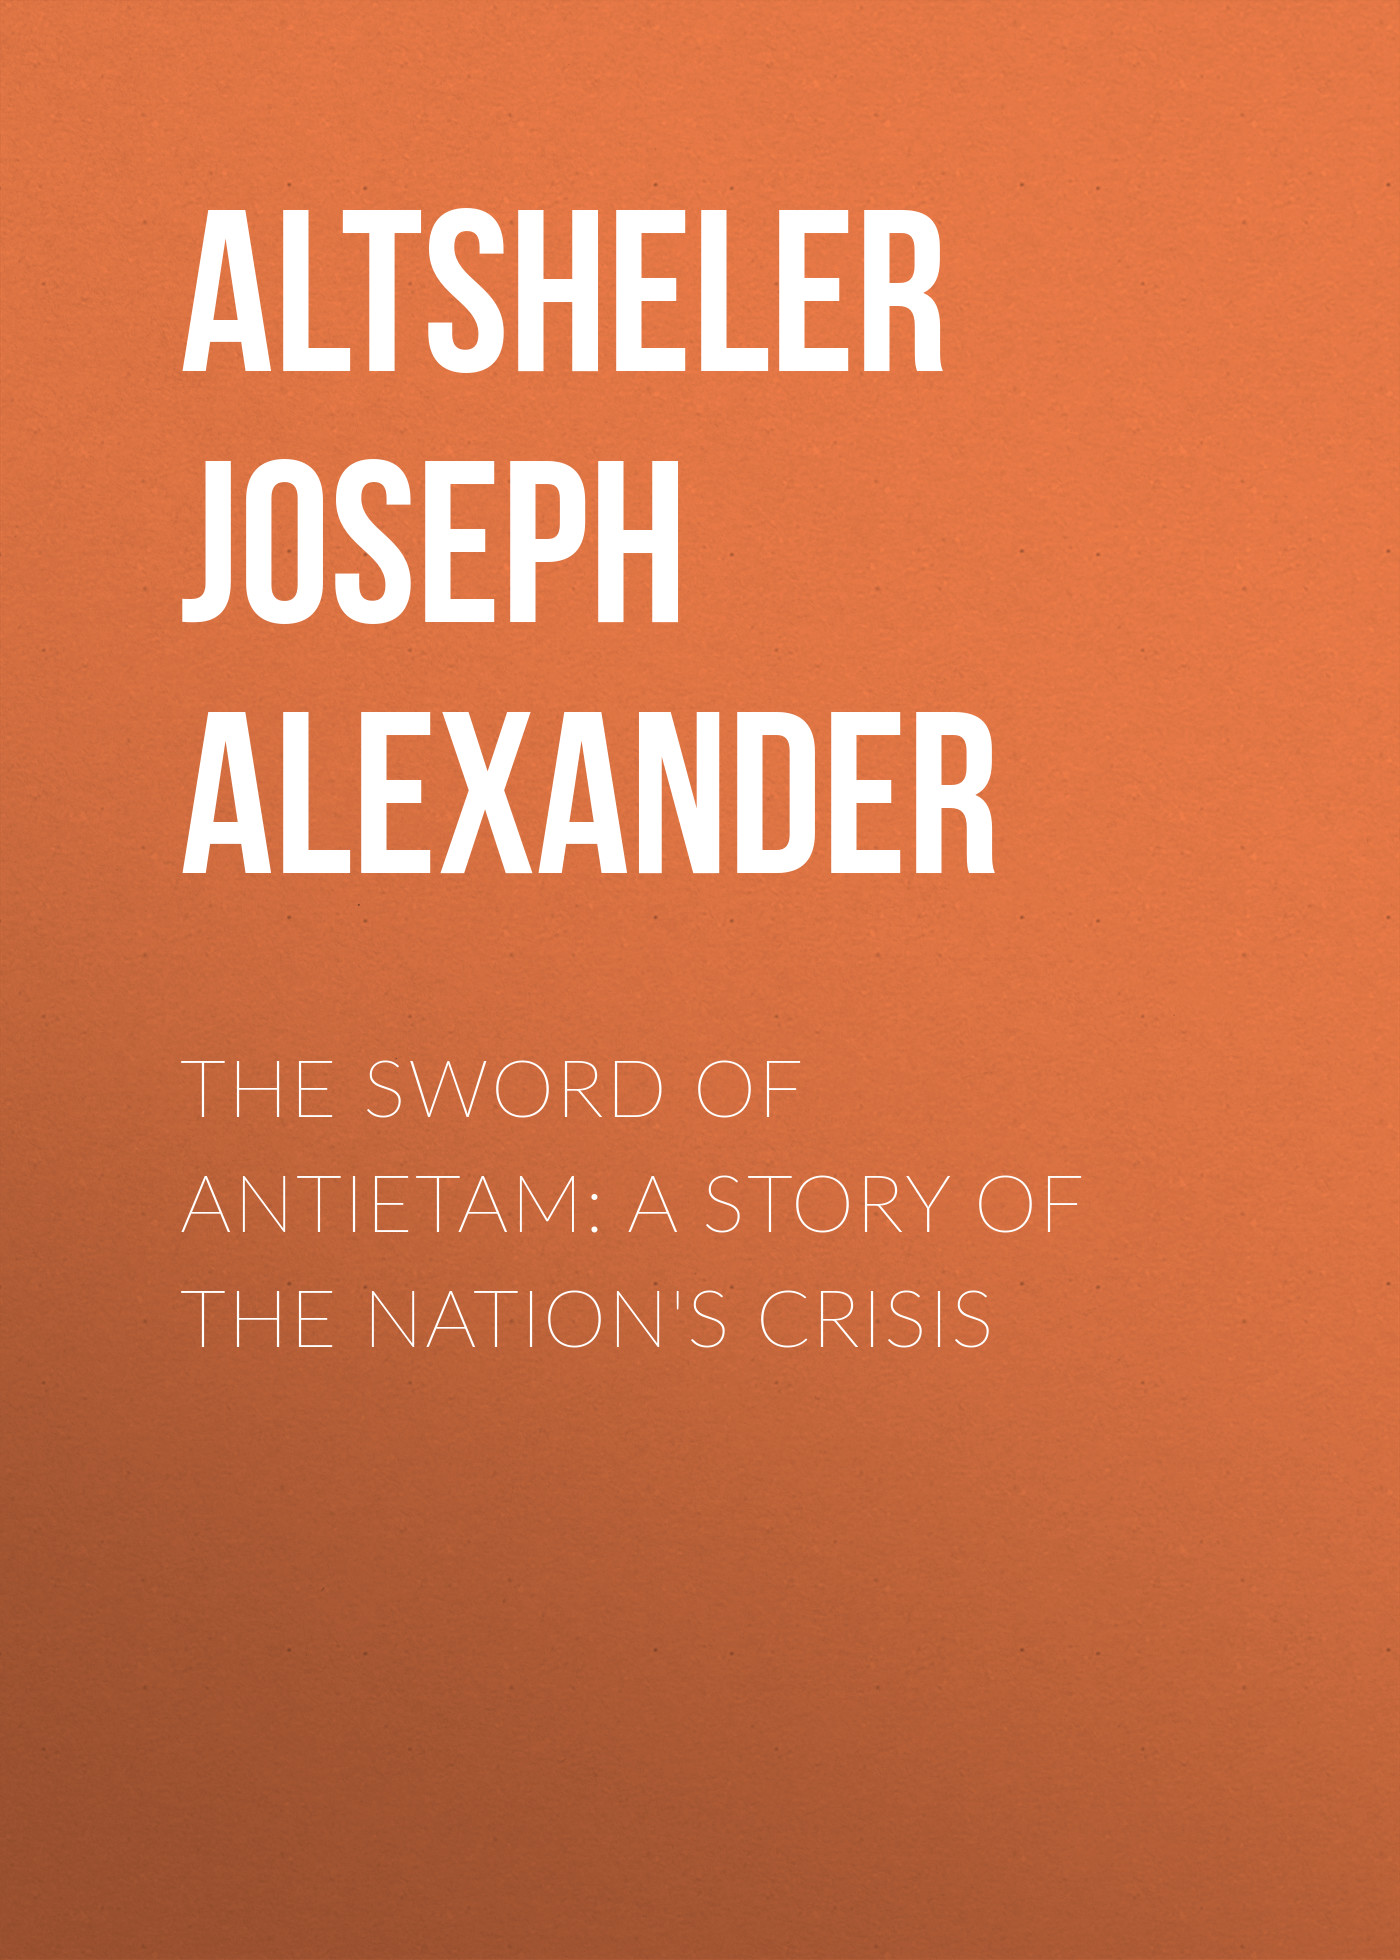 Altsheler Joseph Alexander The Sword of Antietam: A Story of the Nation's Crisis skirt joseph alexander